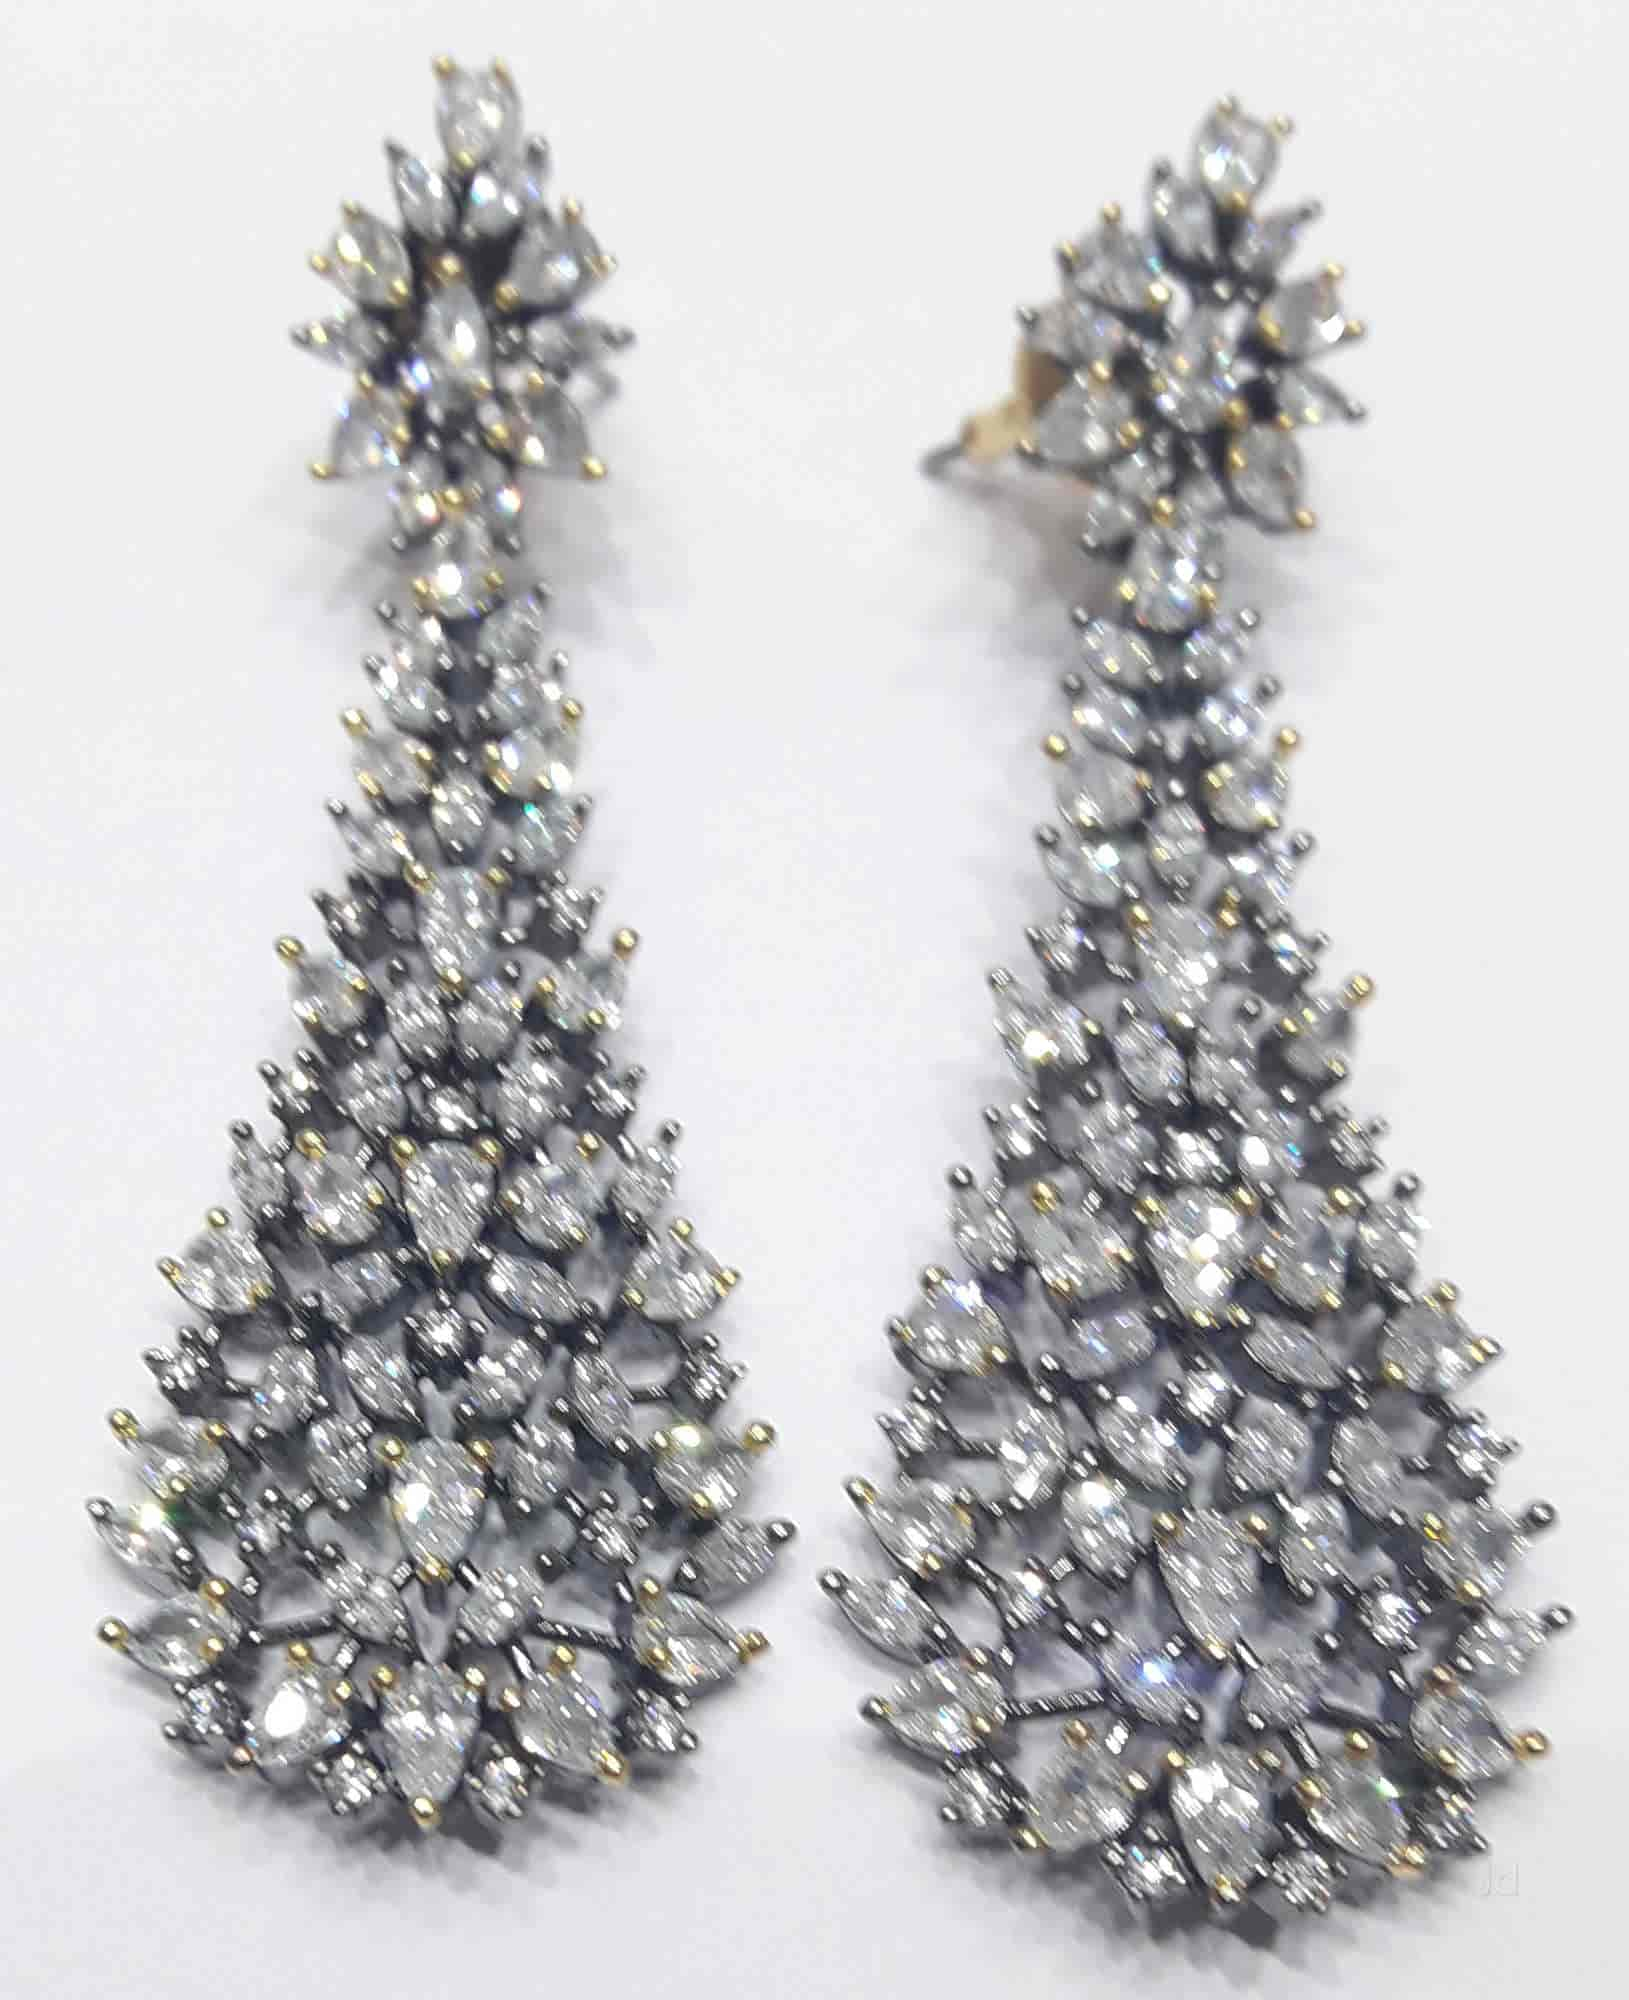 new lot fancy attractive earrings sold sothebys pair and diamond at artemis s sotheby apollo diamonds auction record pink a geneva the world ring for sets of